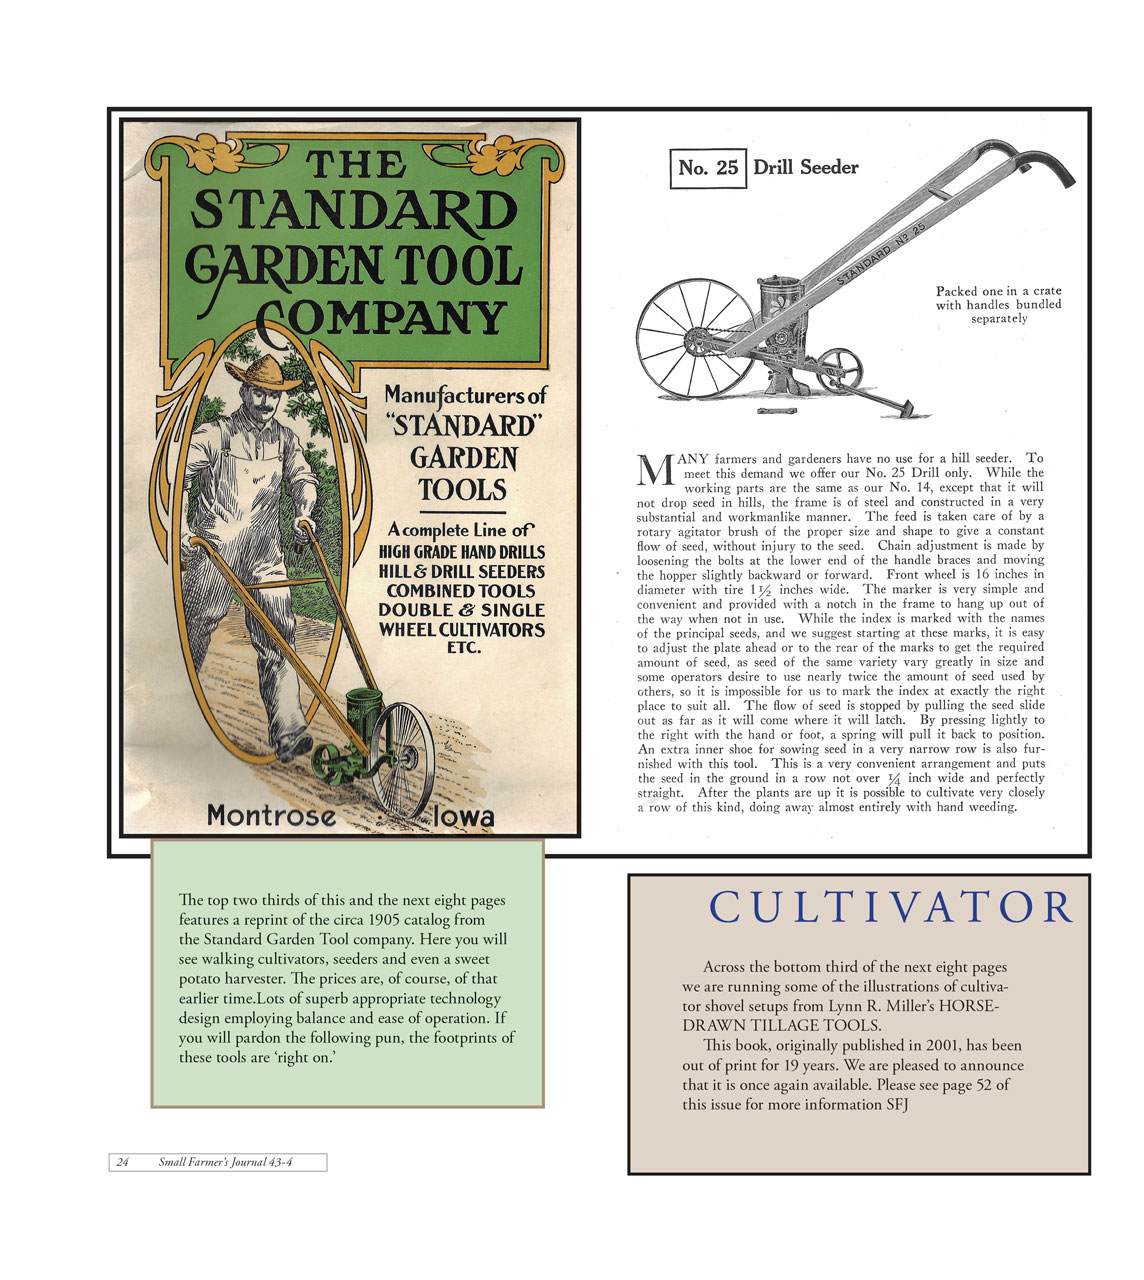 The Standard Garden Tool Company